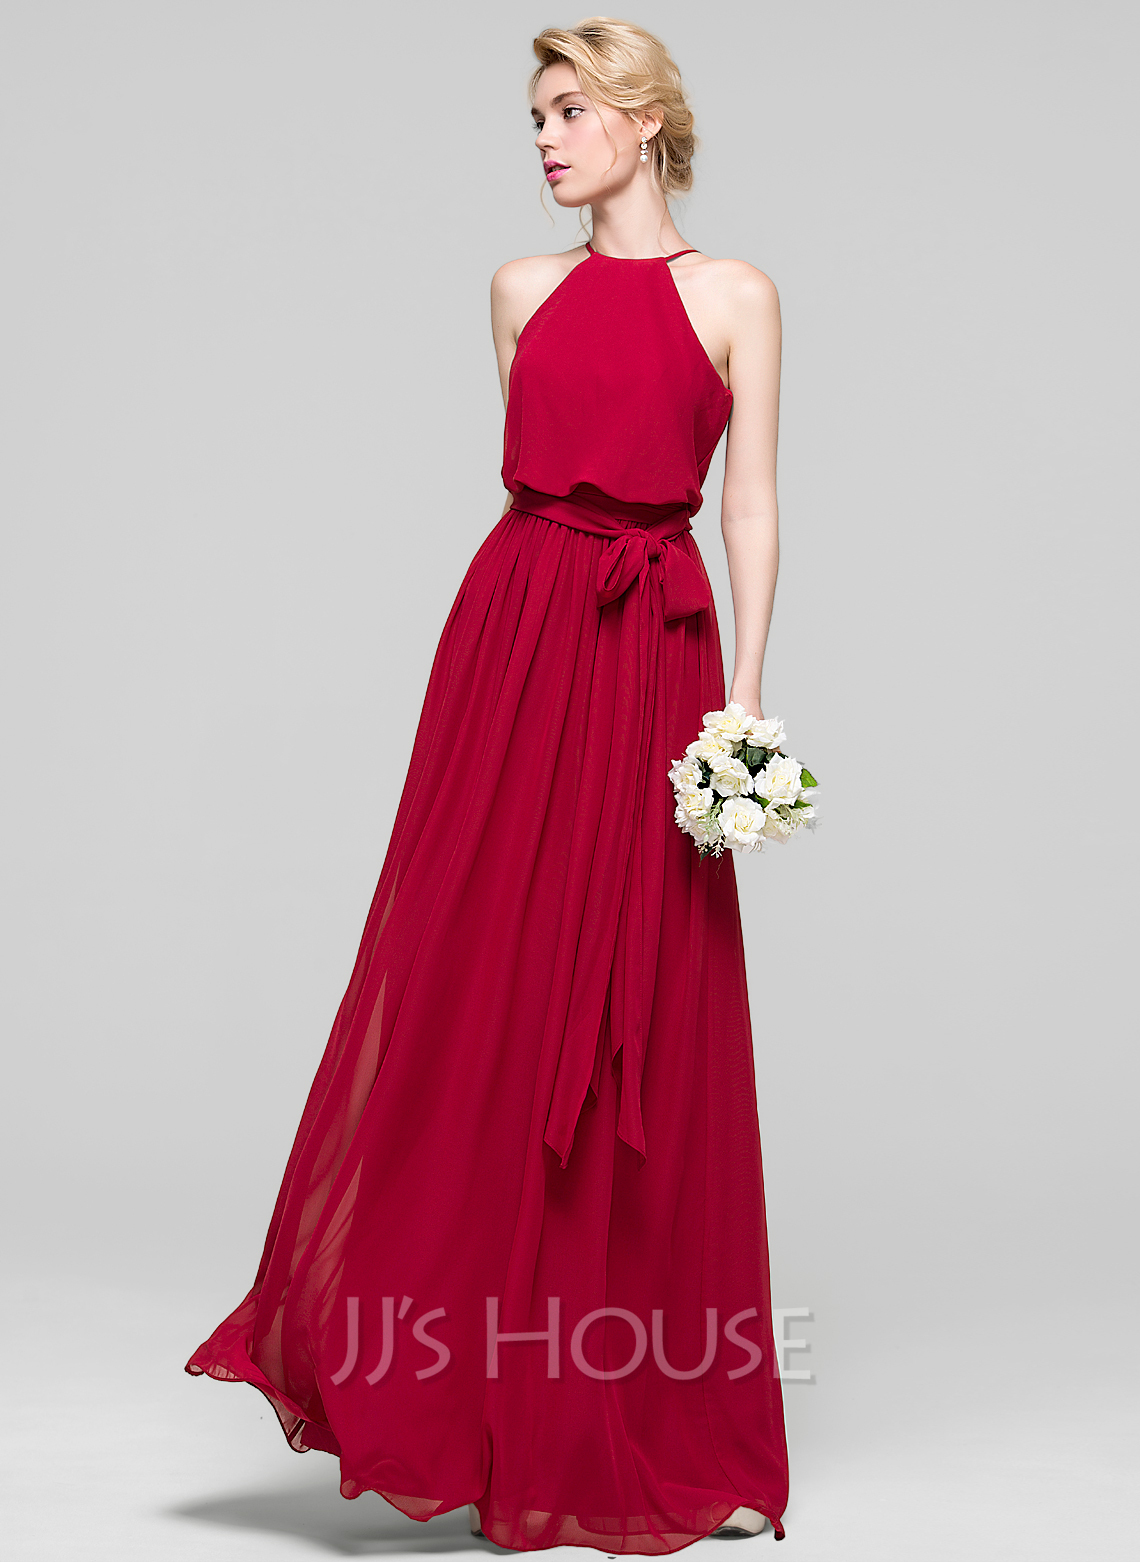 9f7e029c6ef75 A-Line/Princess Scoop Neck Floor-Length Chiffon Bridesmaid Dress With Bow(.  Loading zoom